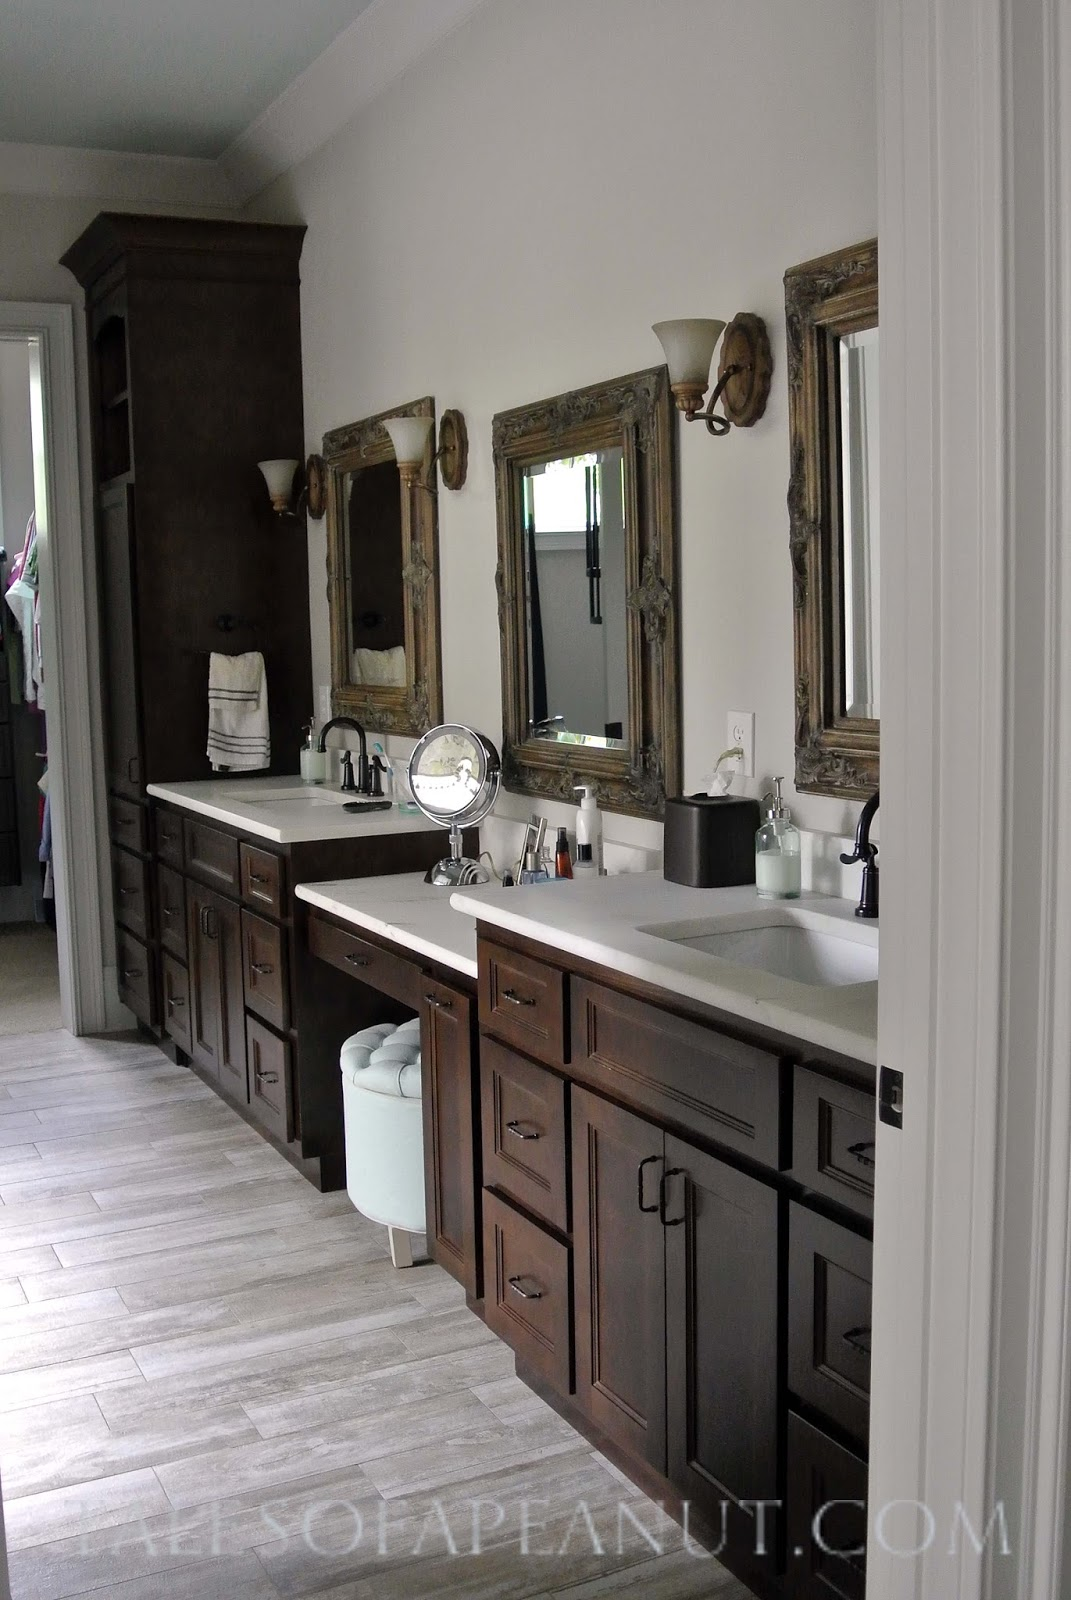 Building a home master bathroom reveal jenn elwell for Bath masters